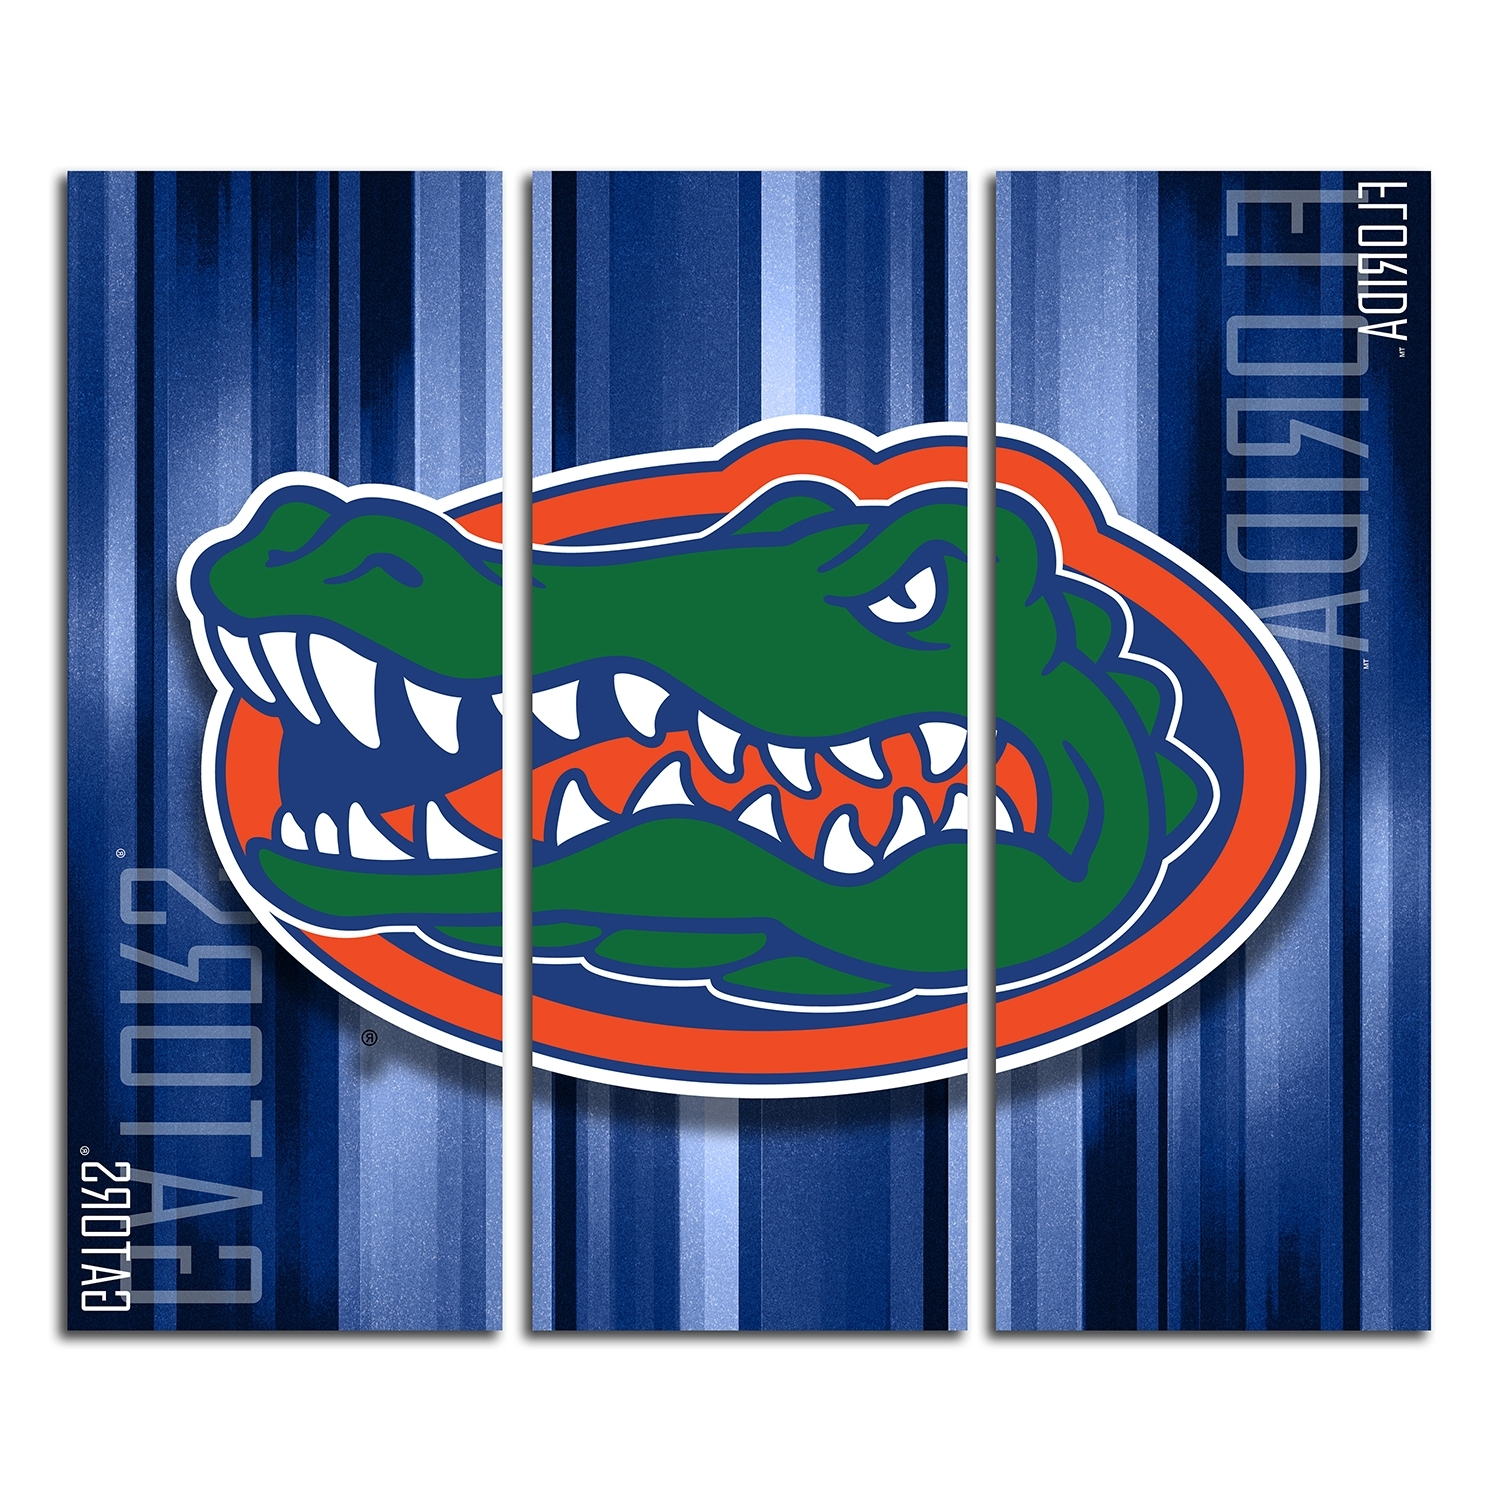 Cozy Design Florida Gator Wall Art Together With Gators Logo Decal Throughout Current Florida Gator Wall Art (View 3 of 15)